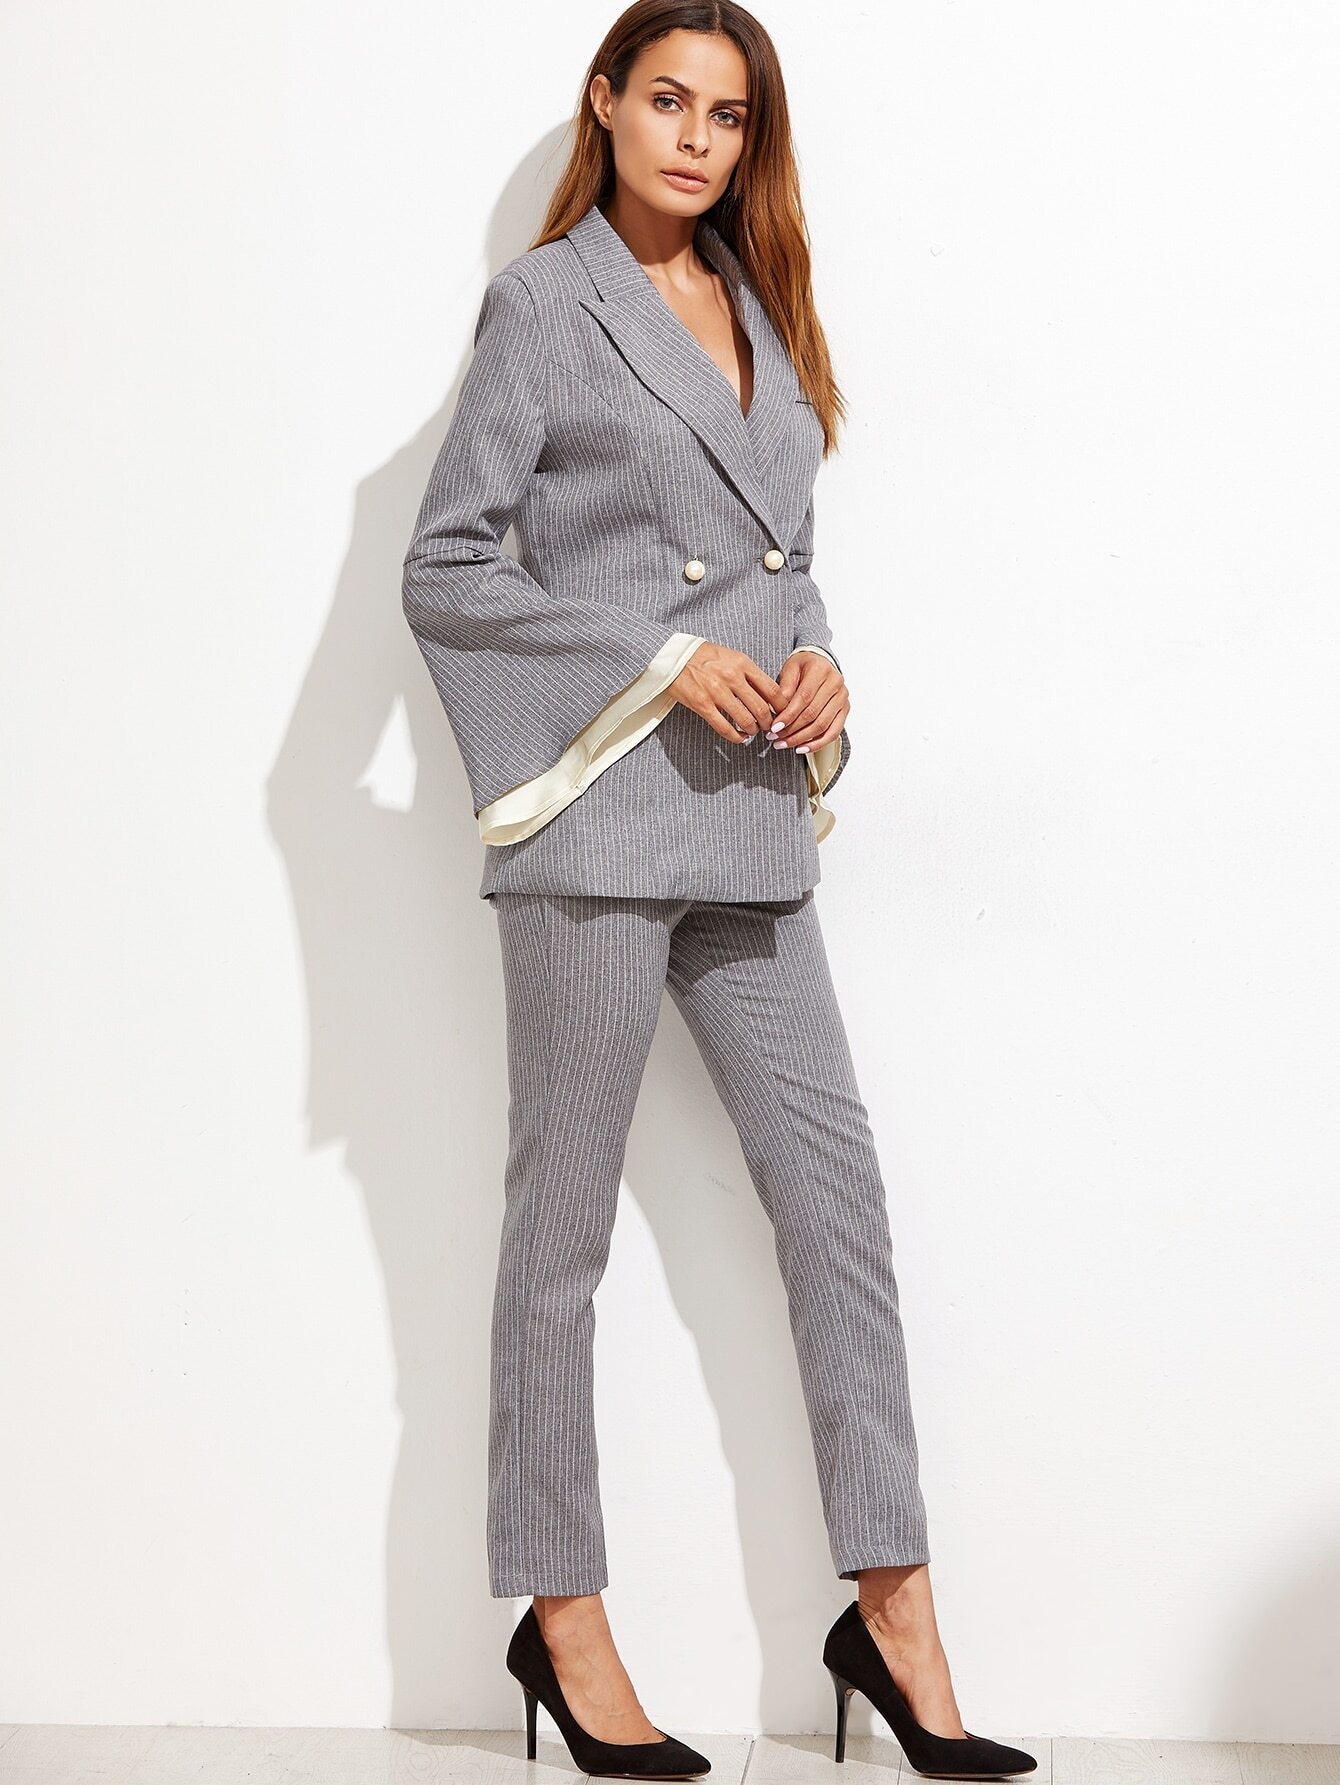 Grey Vertical Striped Bell Sleeve Blazer With Pants -SheIn(Sheinside)